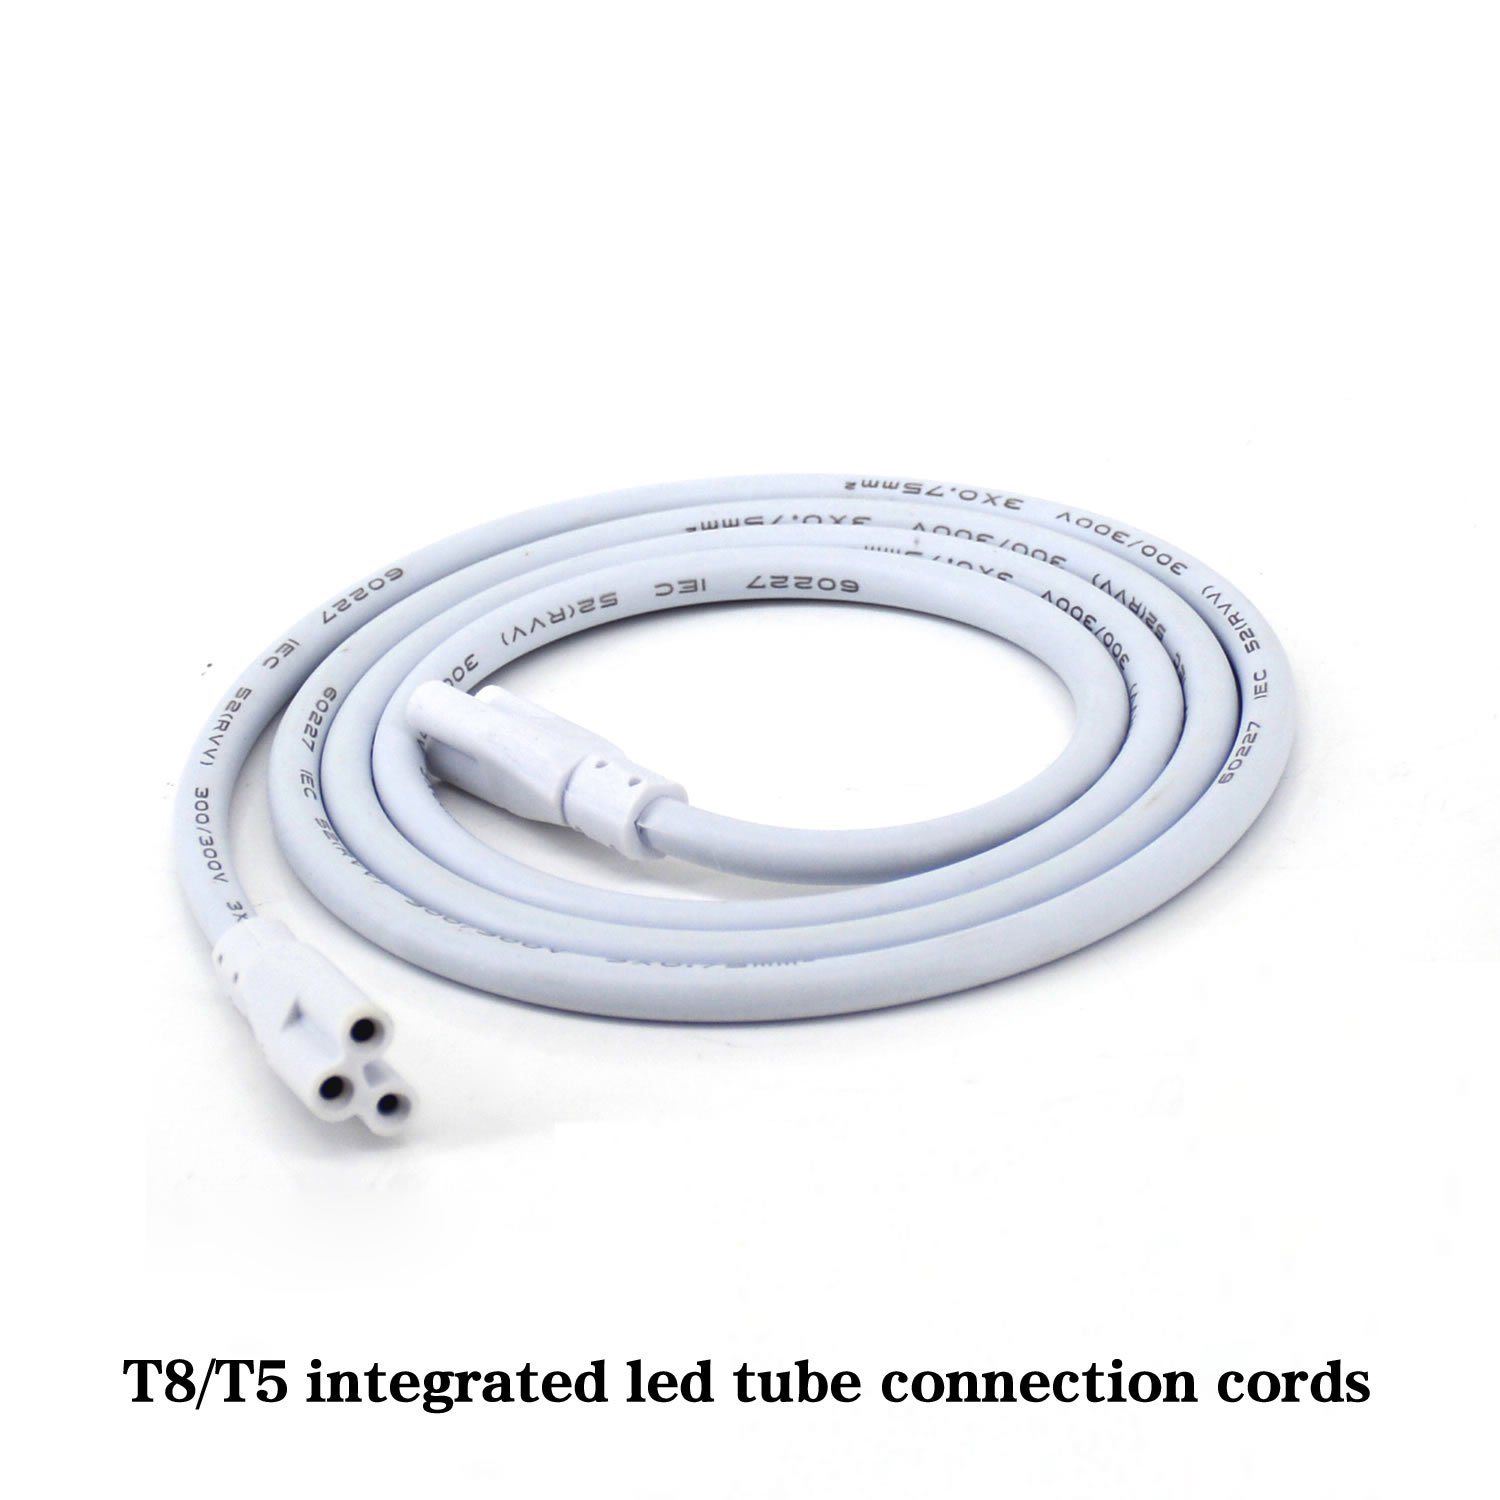 6ft 6-Pack Dual-Ended Connector Cable for Integrated Led Tube Bulb T5 T8 LED Lamp Connecting Cords